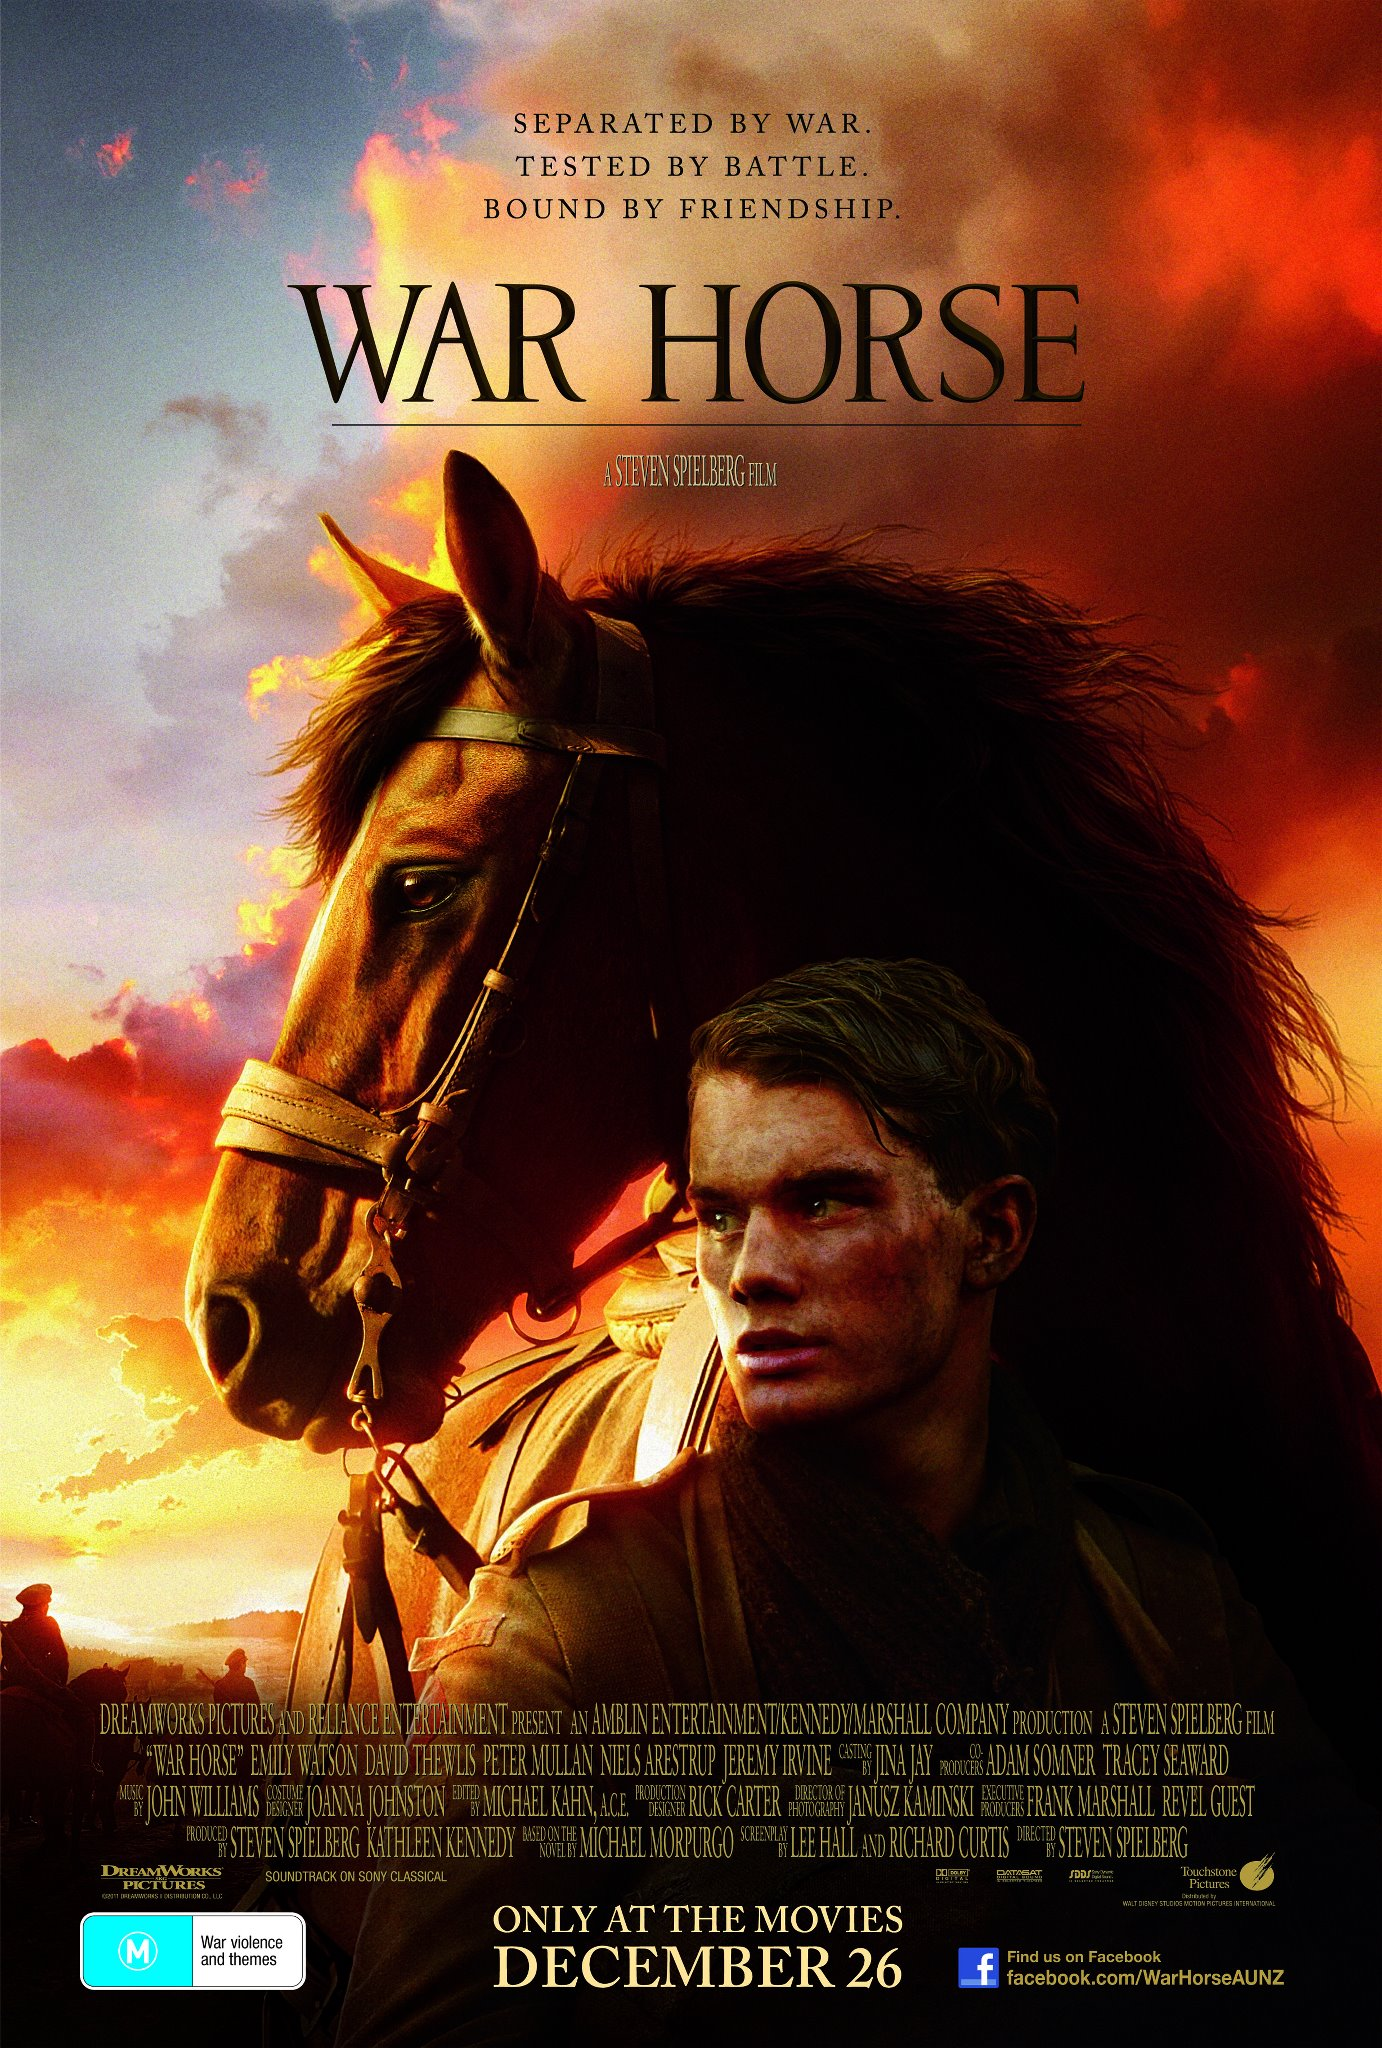 http://www.thereelbits.com/wp-content/uploads/2011/12/war-horse-posterAU.jpg